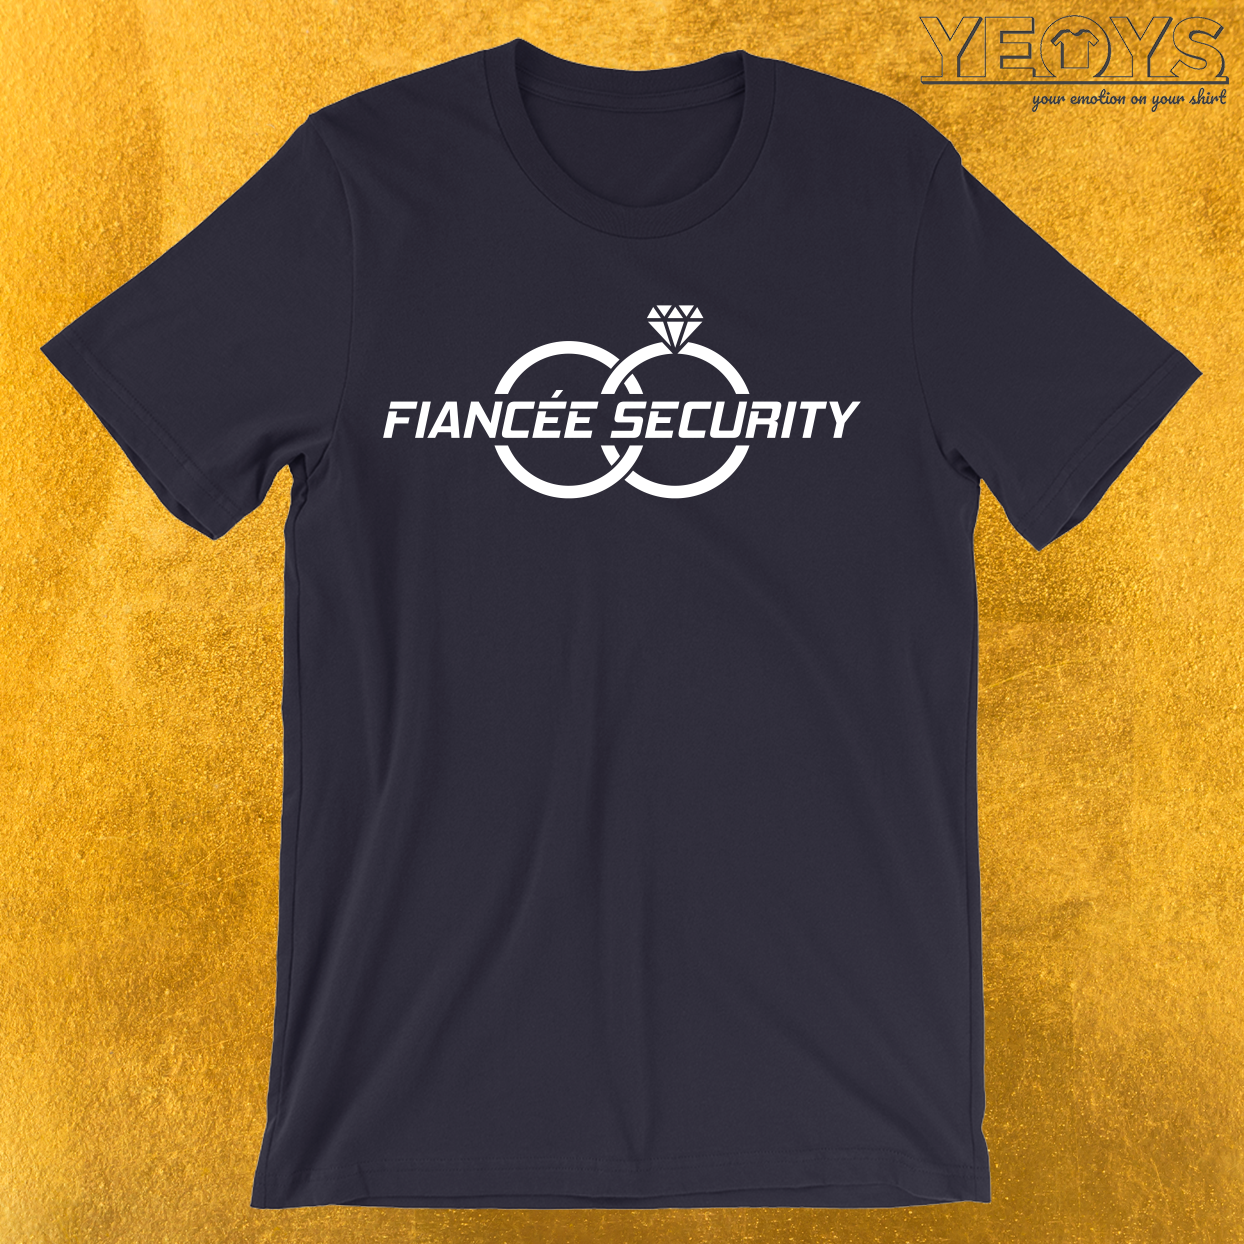 Fiancée Security T-Shirt